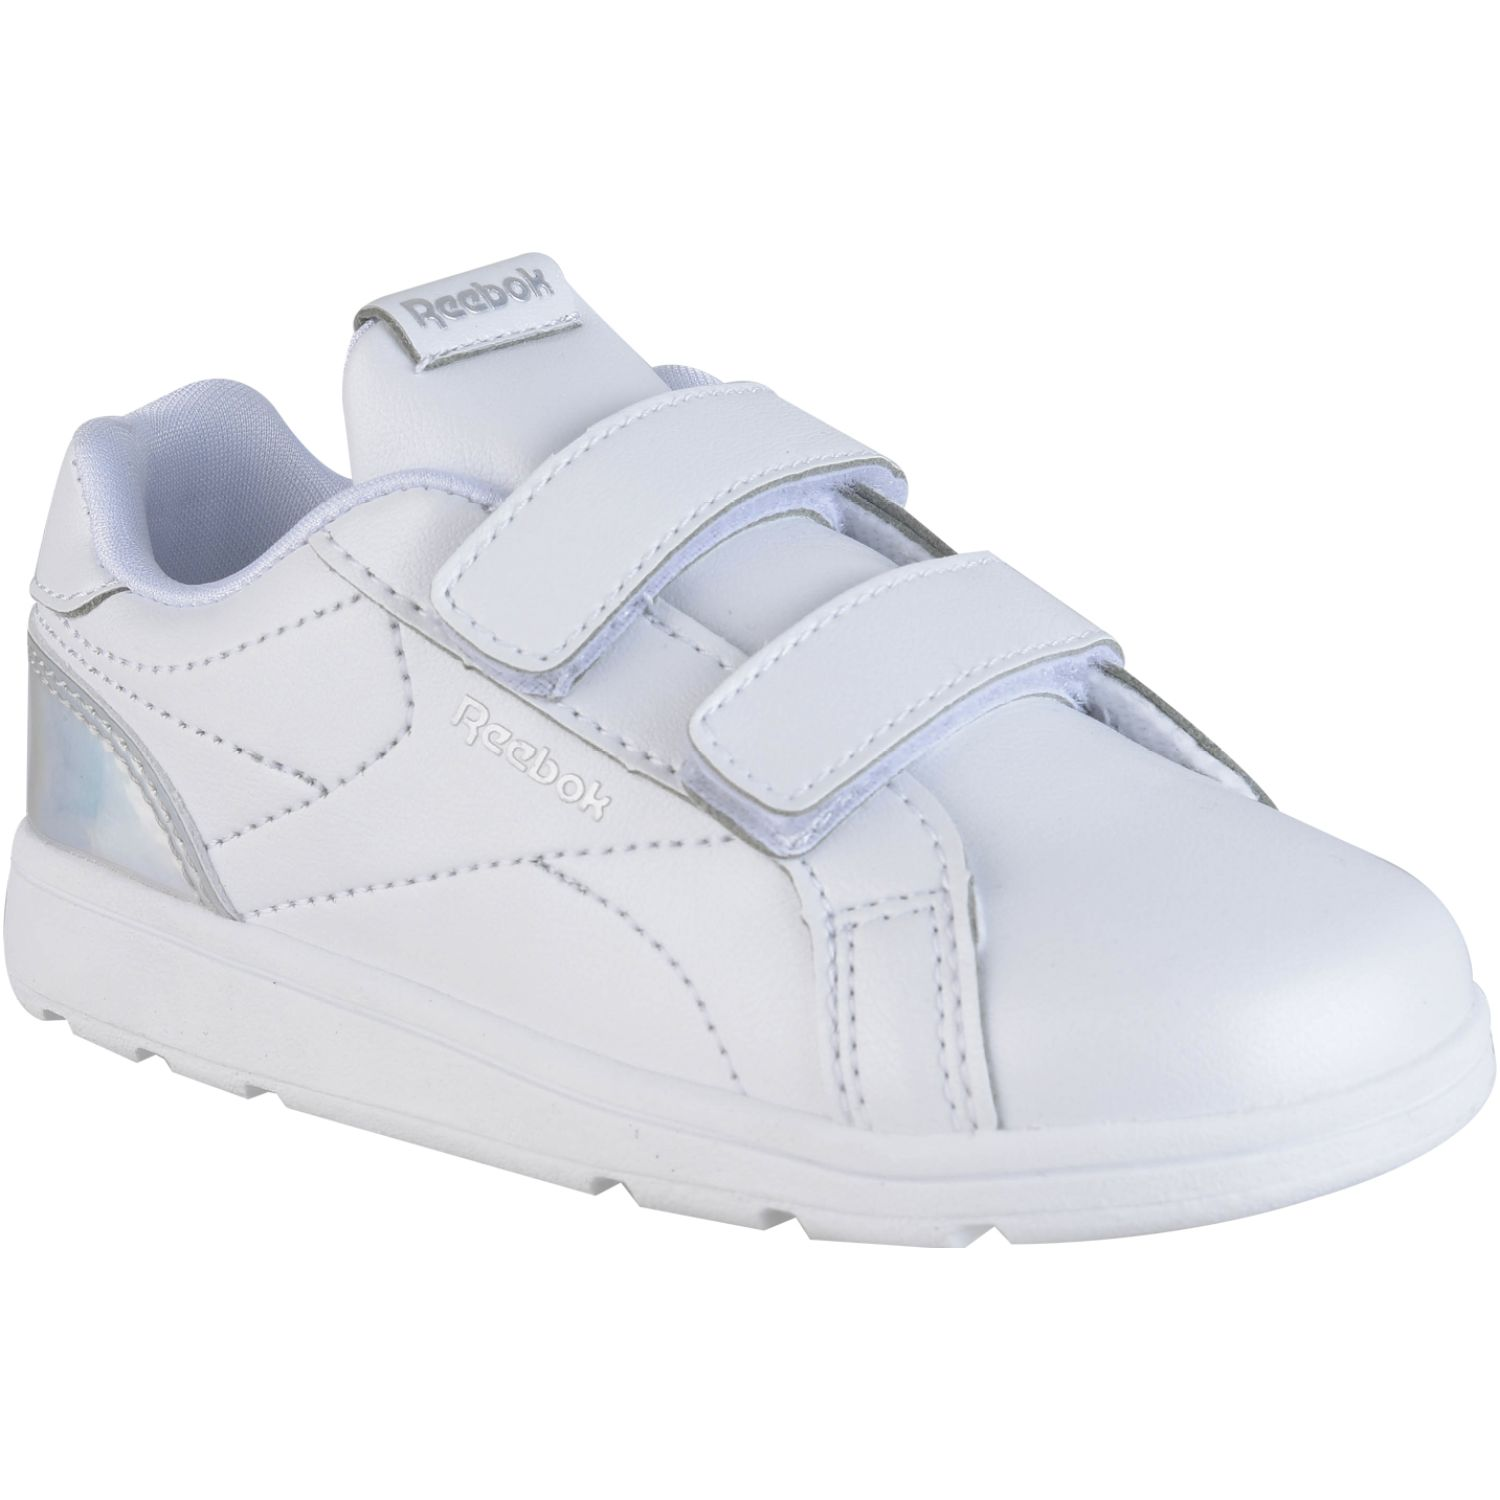 Reebok rbk royal comp cln 2v Blanco Walking